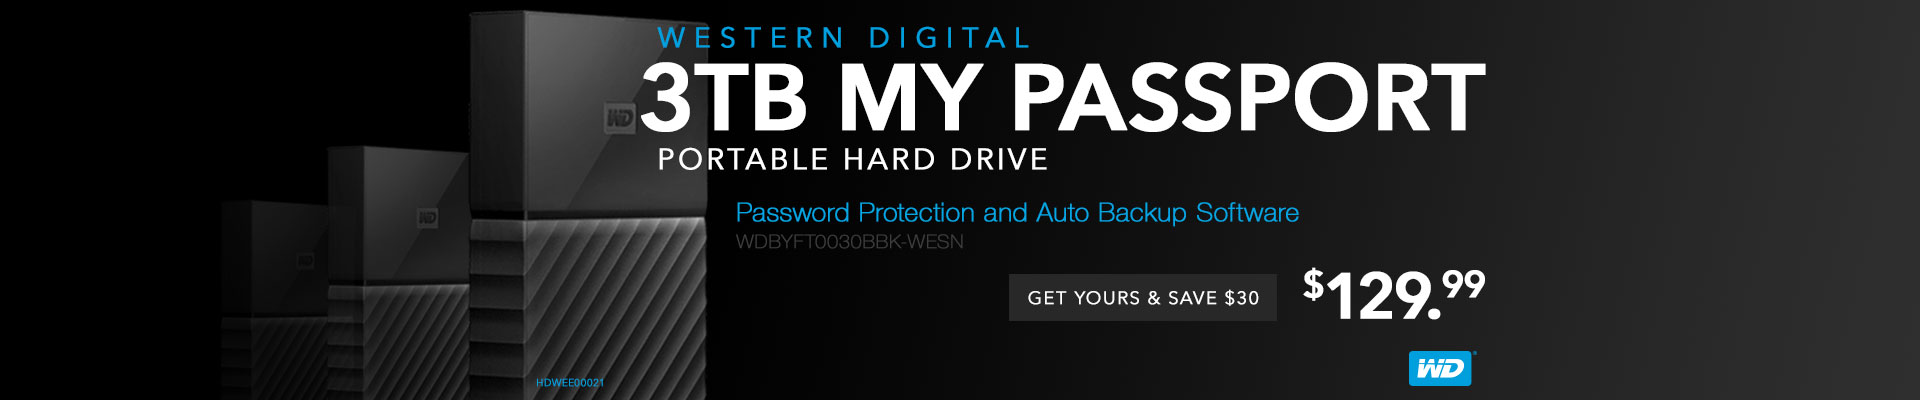 WD 3TB My Passport Portable Hard Drive with password protection